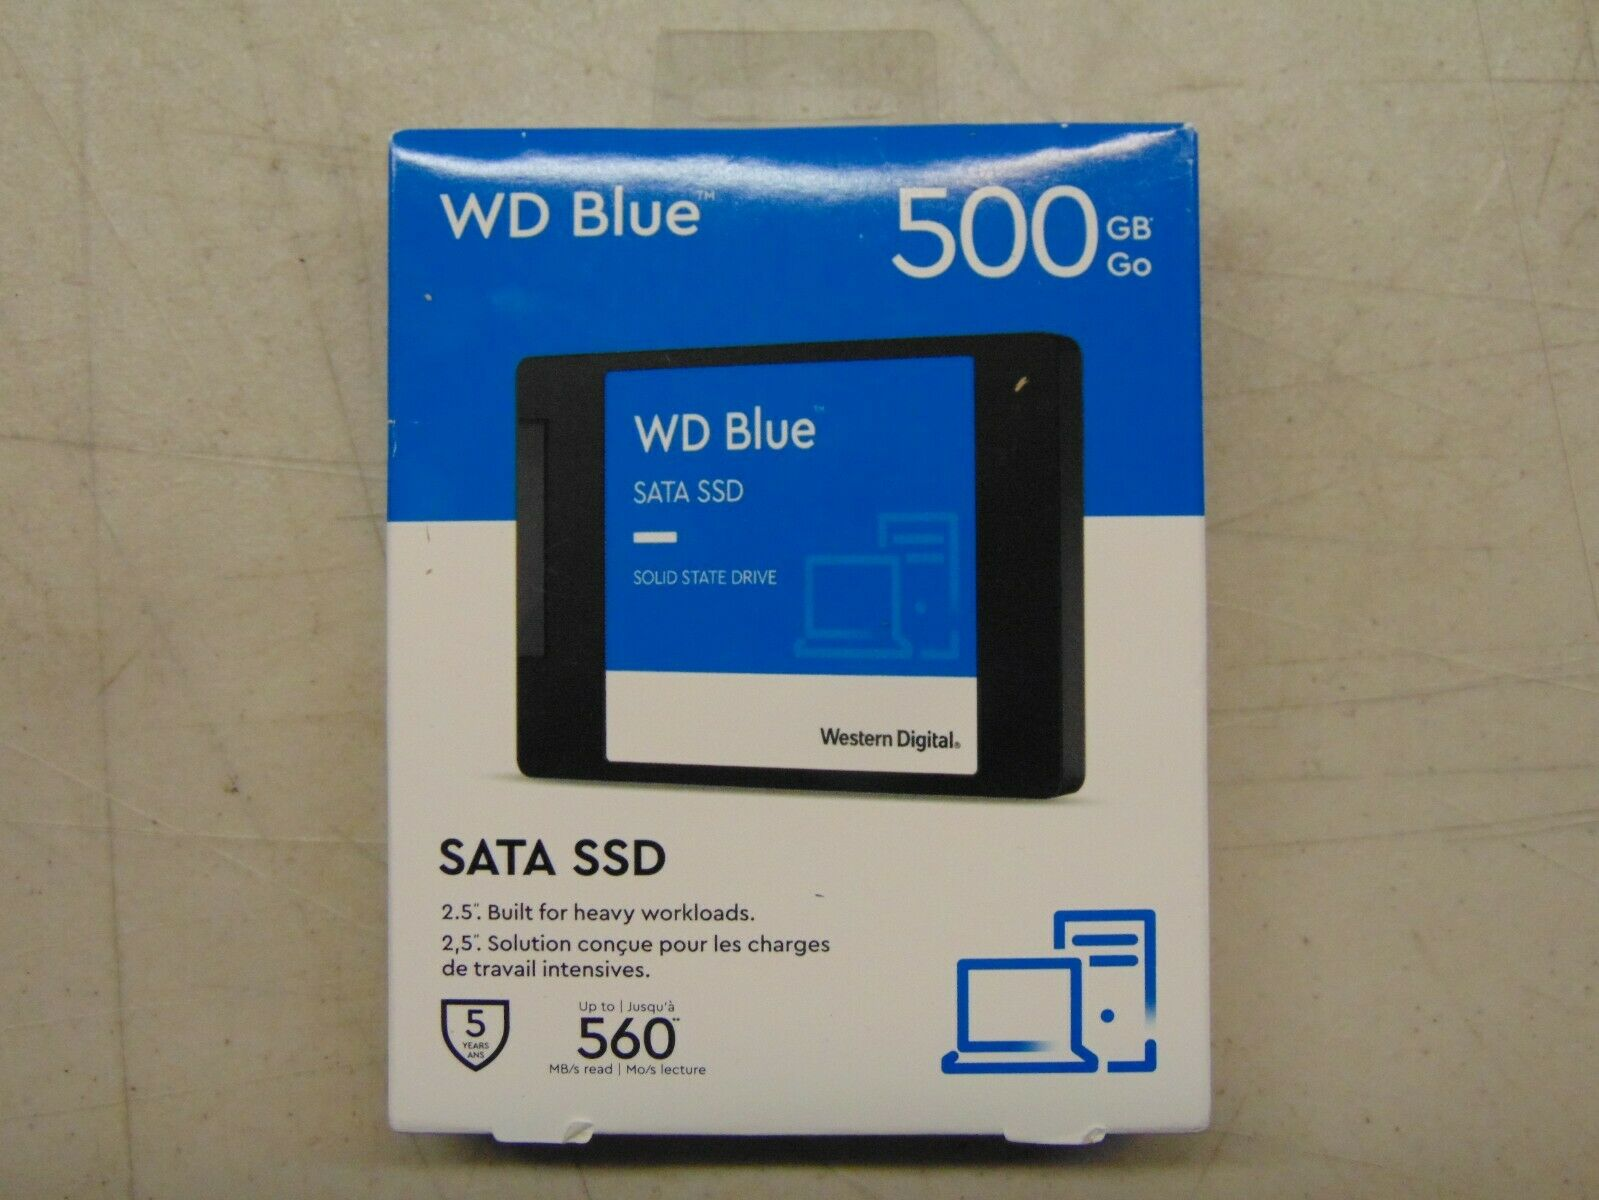 WD - Blue 500GB Internal SATA Solid State Drive. Buy it now for 56.00